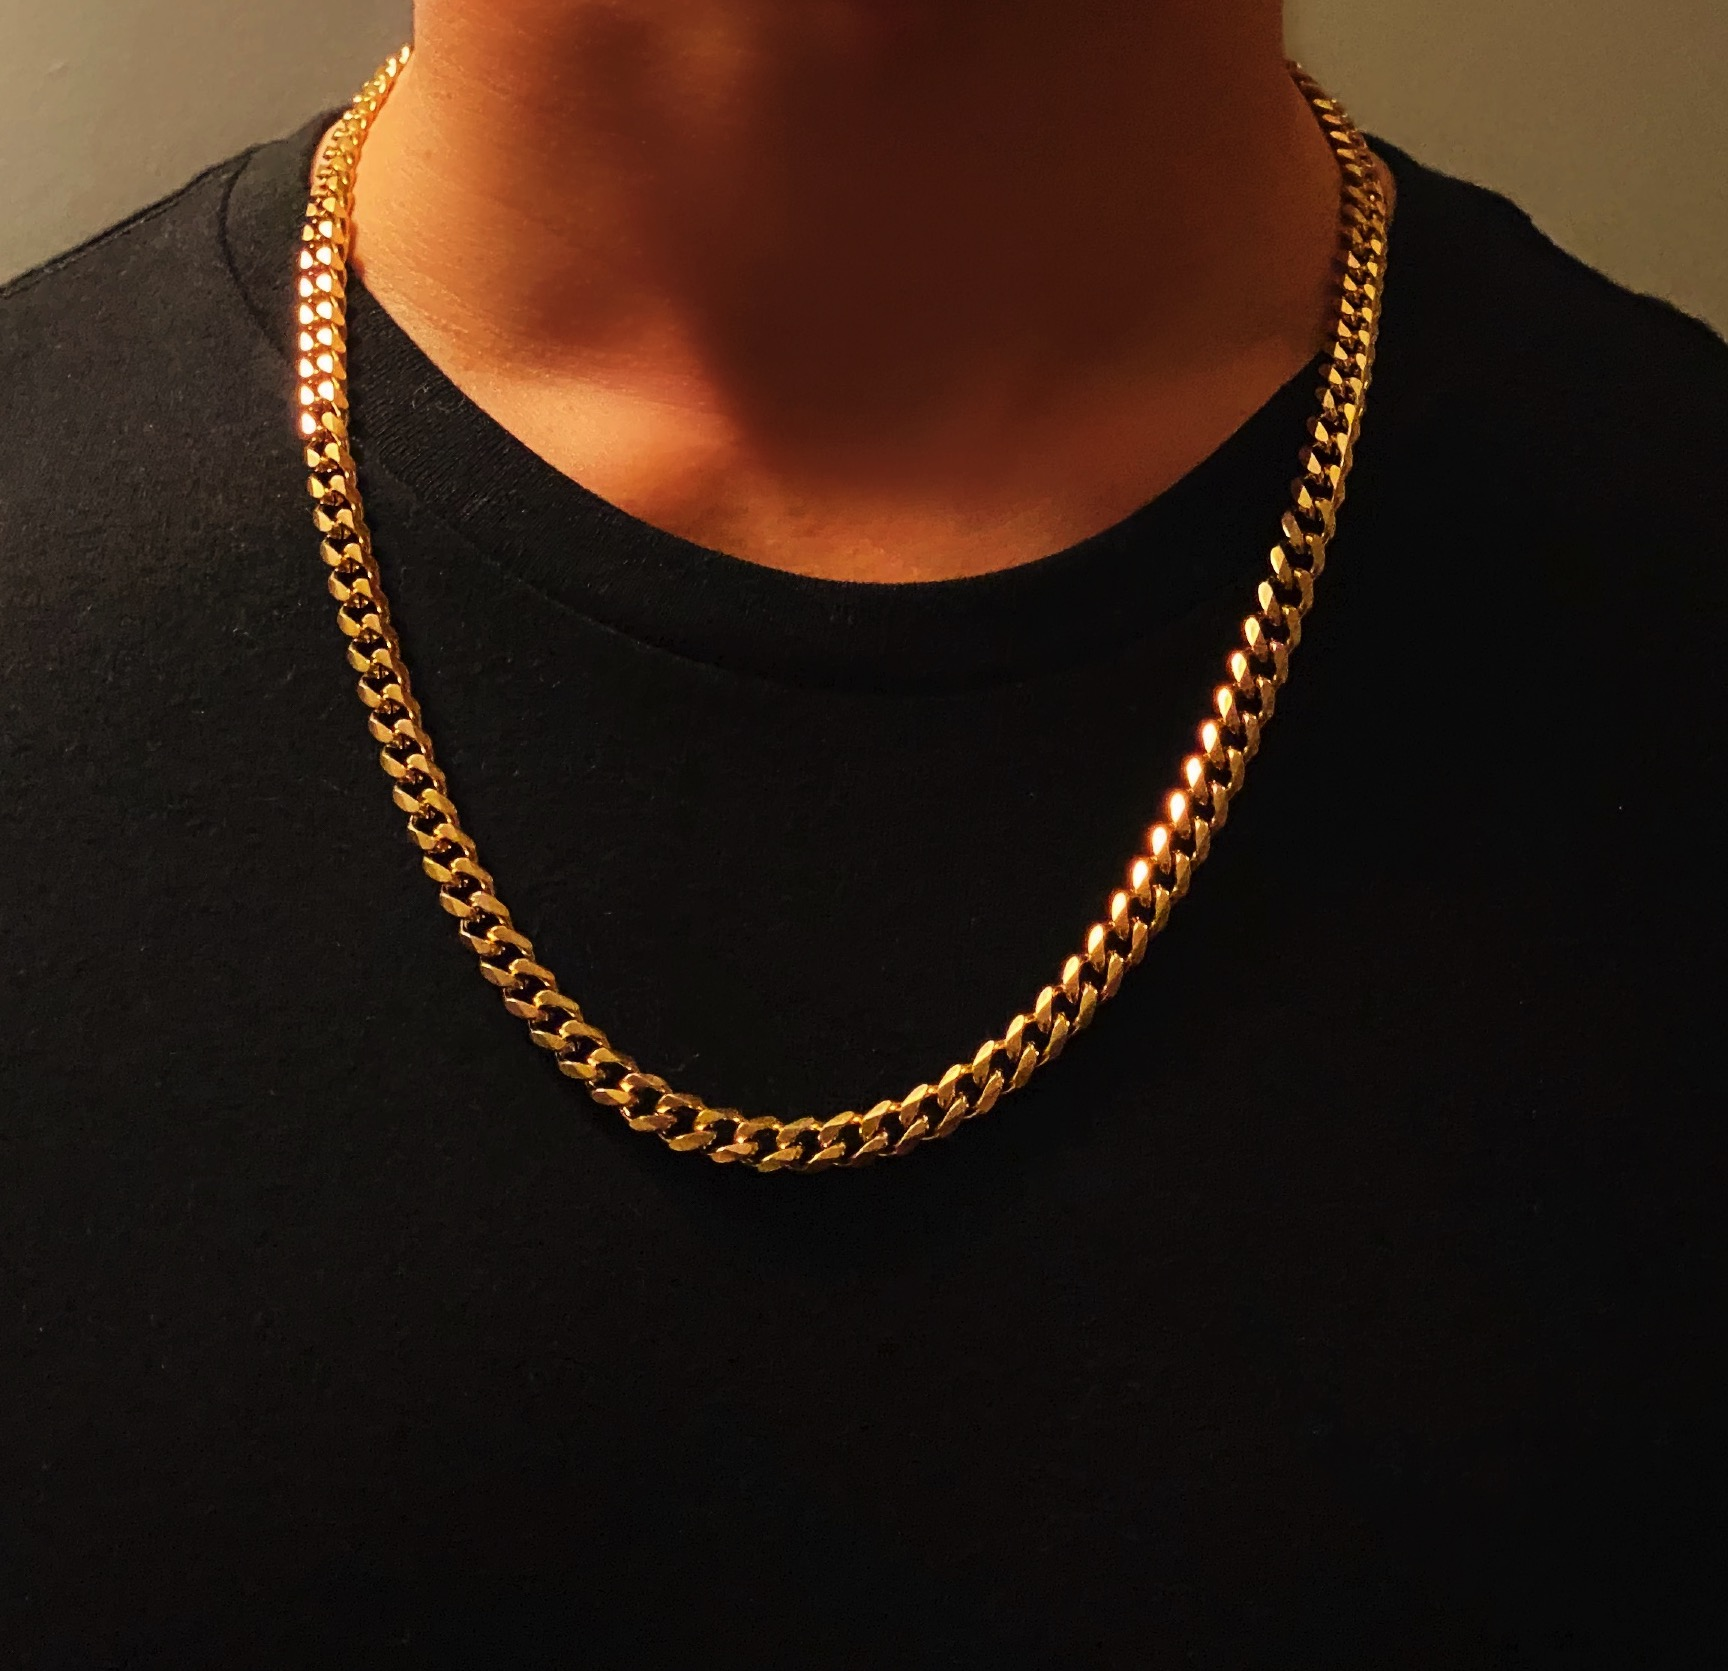 Men's Gold Necklace Chain Curb Style, 7mm Width – Lava©